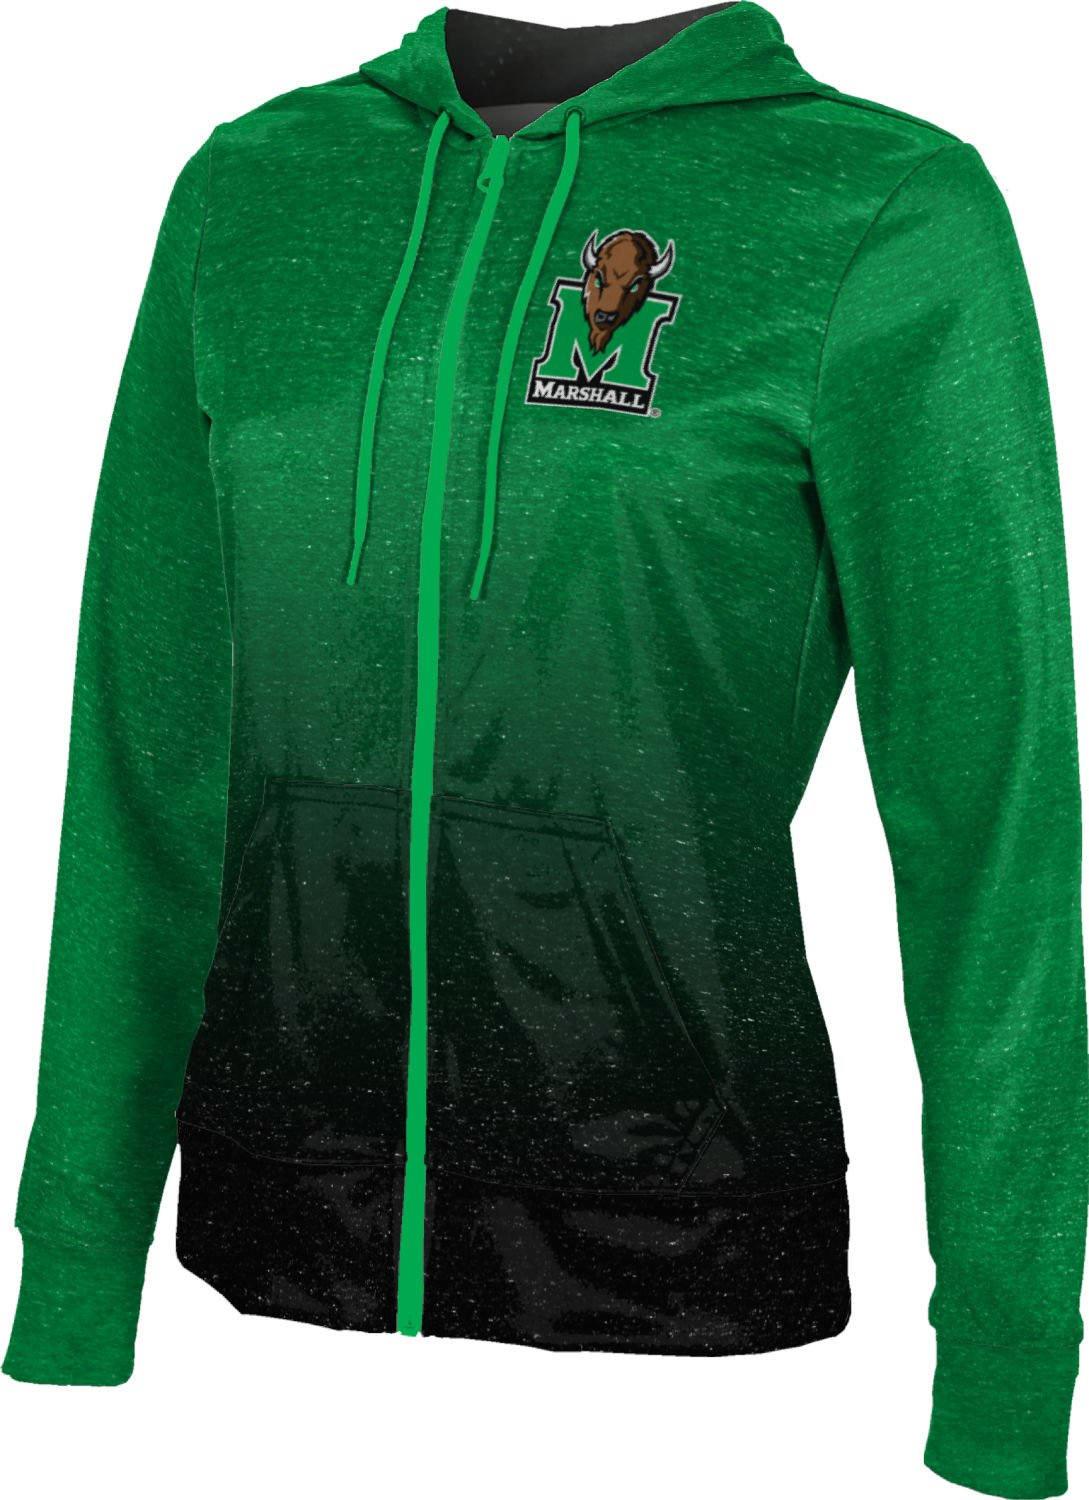 ProSphere Marshall University Women's Fullzip Hoodie - Ombre FCFD1 (XX-Large)